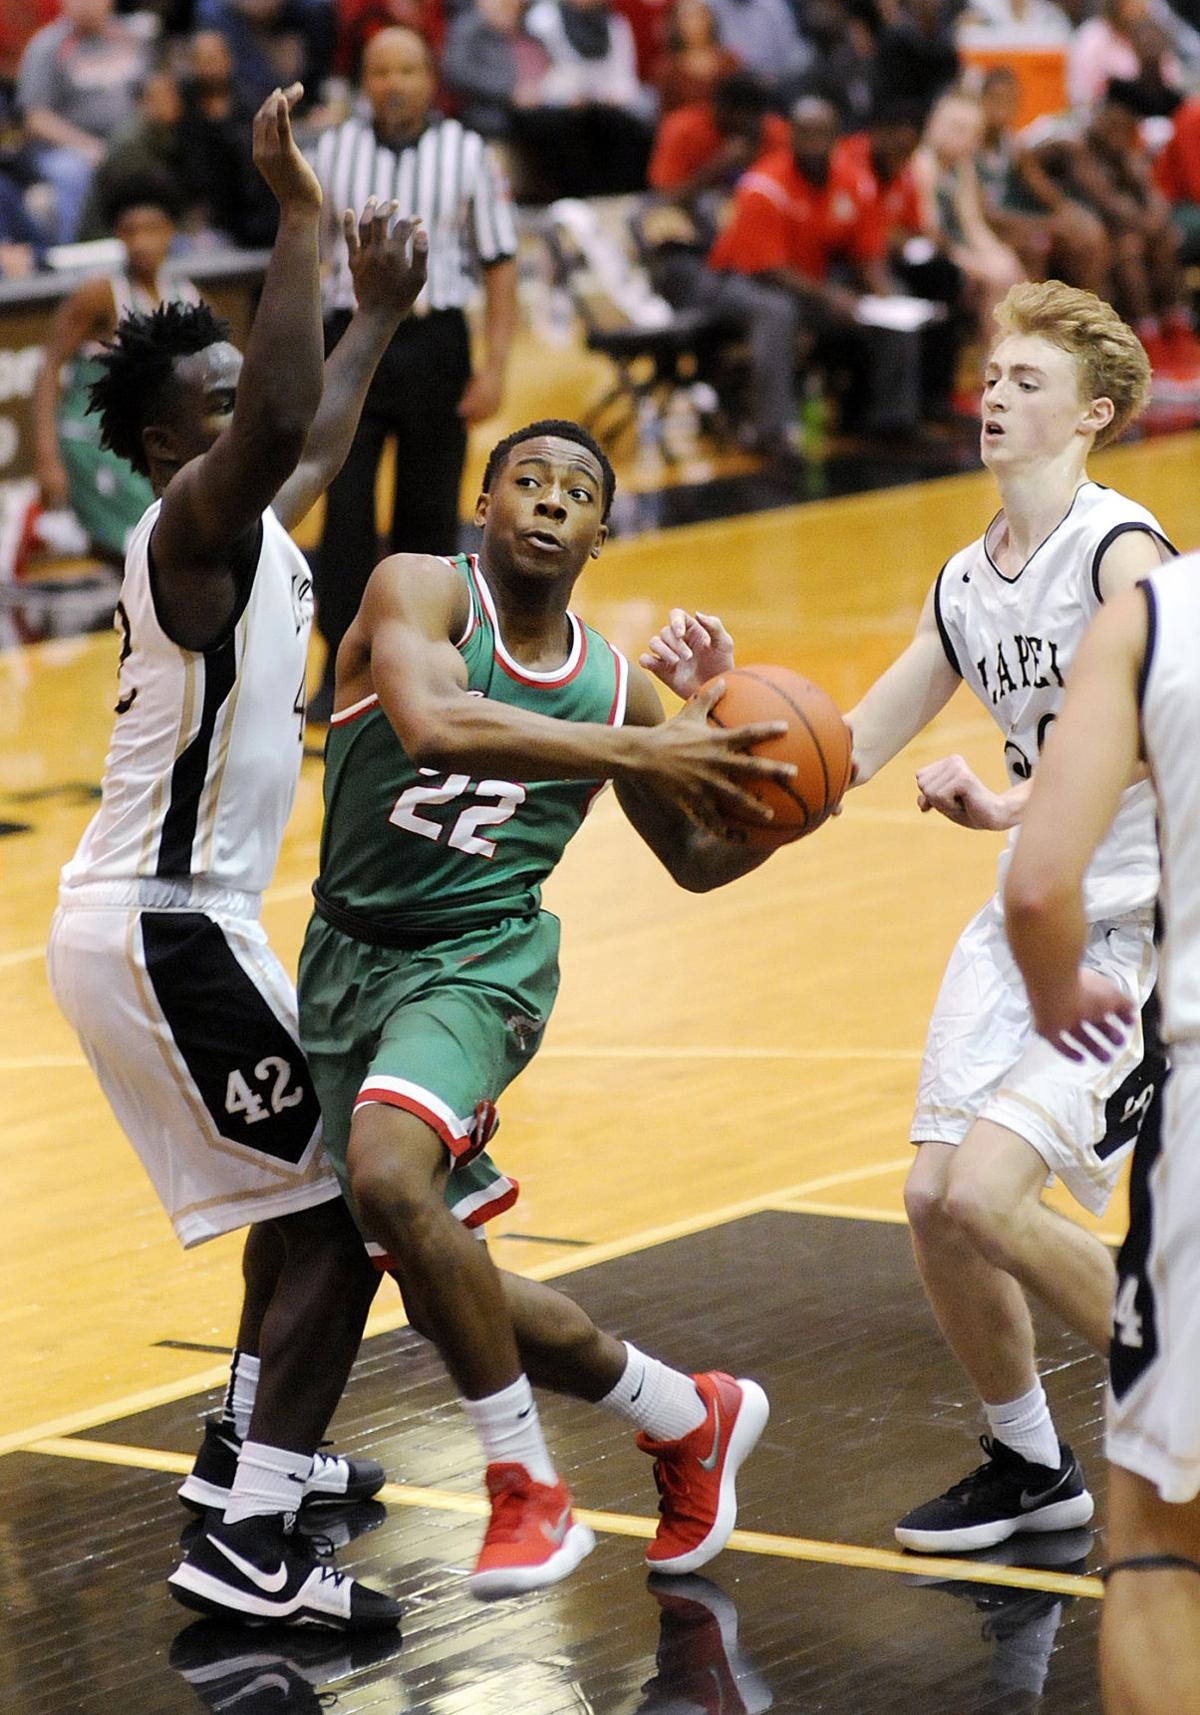 Indians pull out sloppy win at Lapel Sports